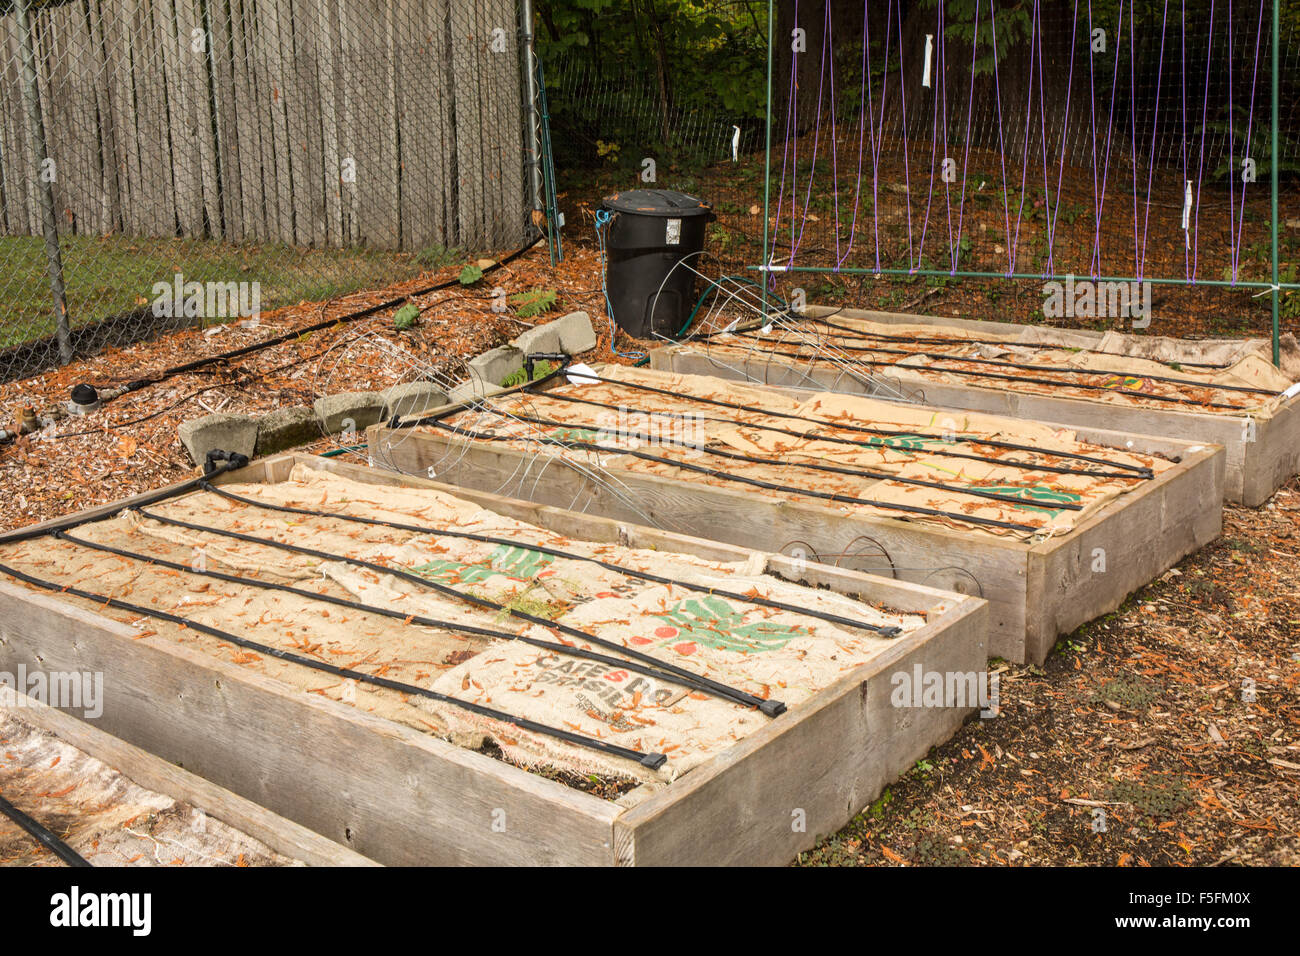 Raised Garden Beds Prepared For The Winter By Putting Burlap Bags Over Soil  To Lessen The Leaching Of Nutrients By Winter Rains